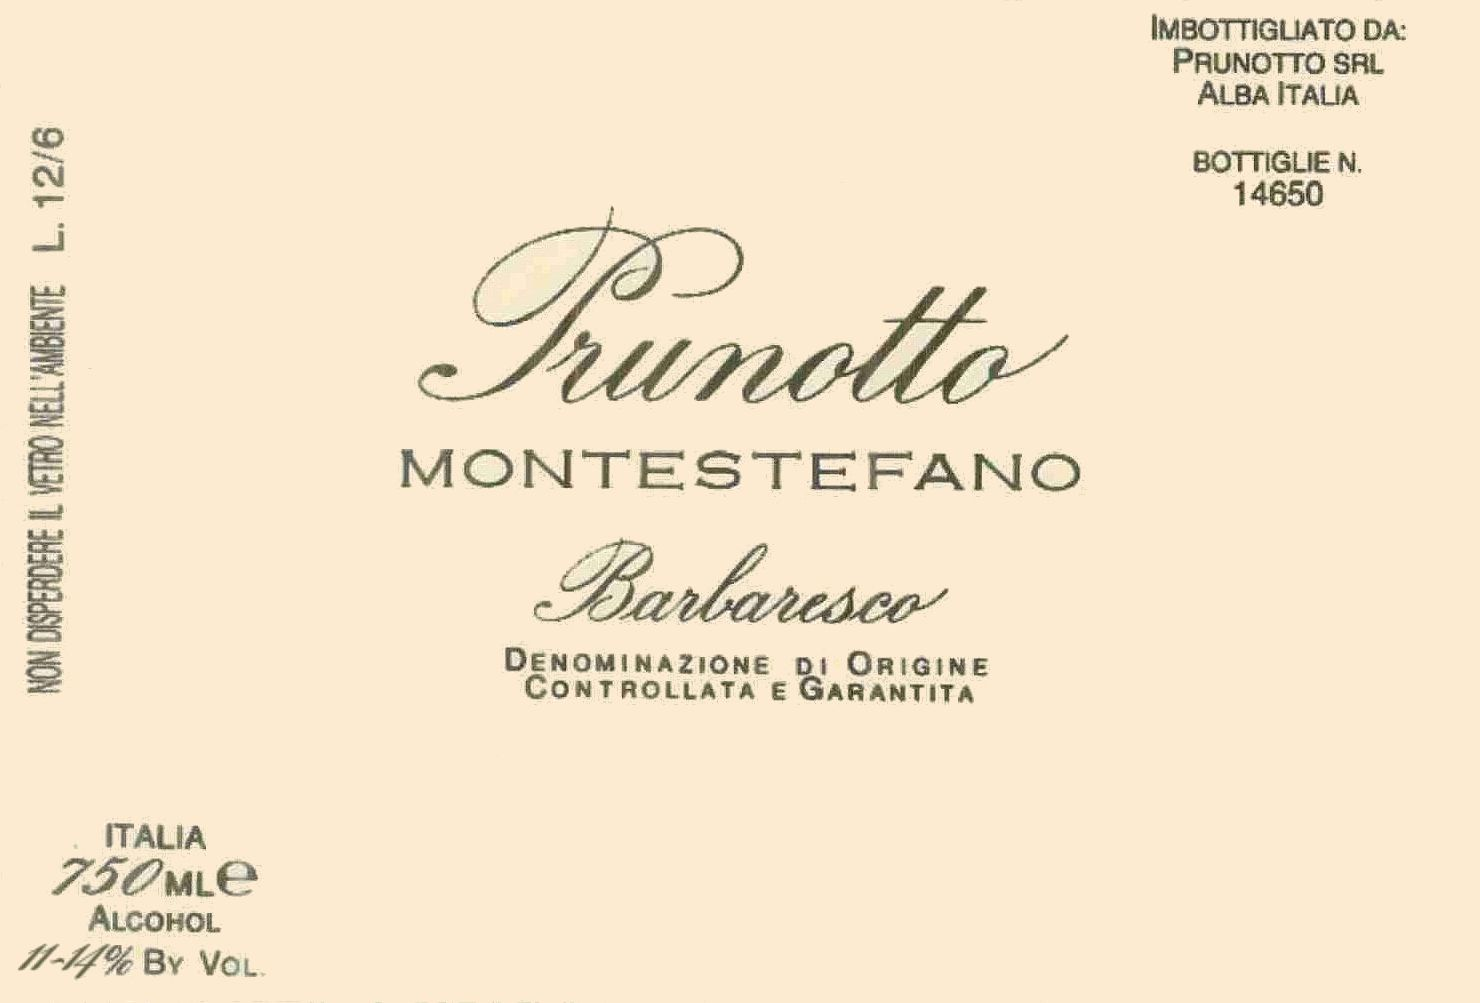 Prunotto Barbaresco Montestefano 1993 Front Label